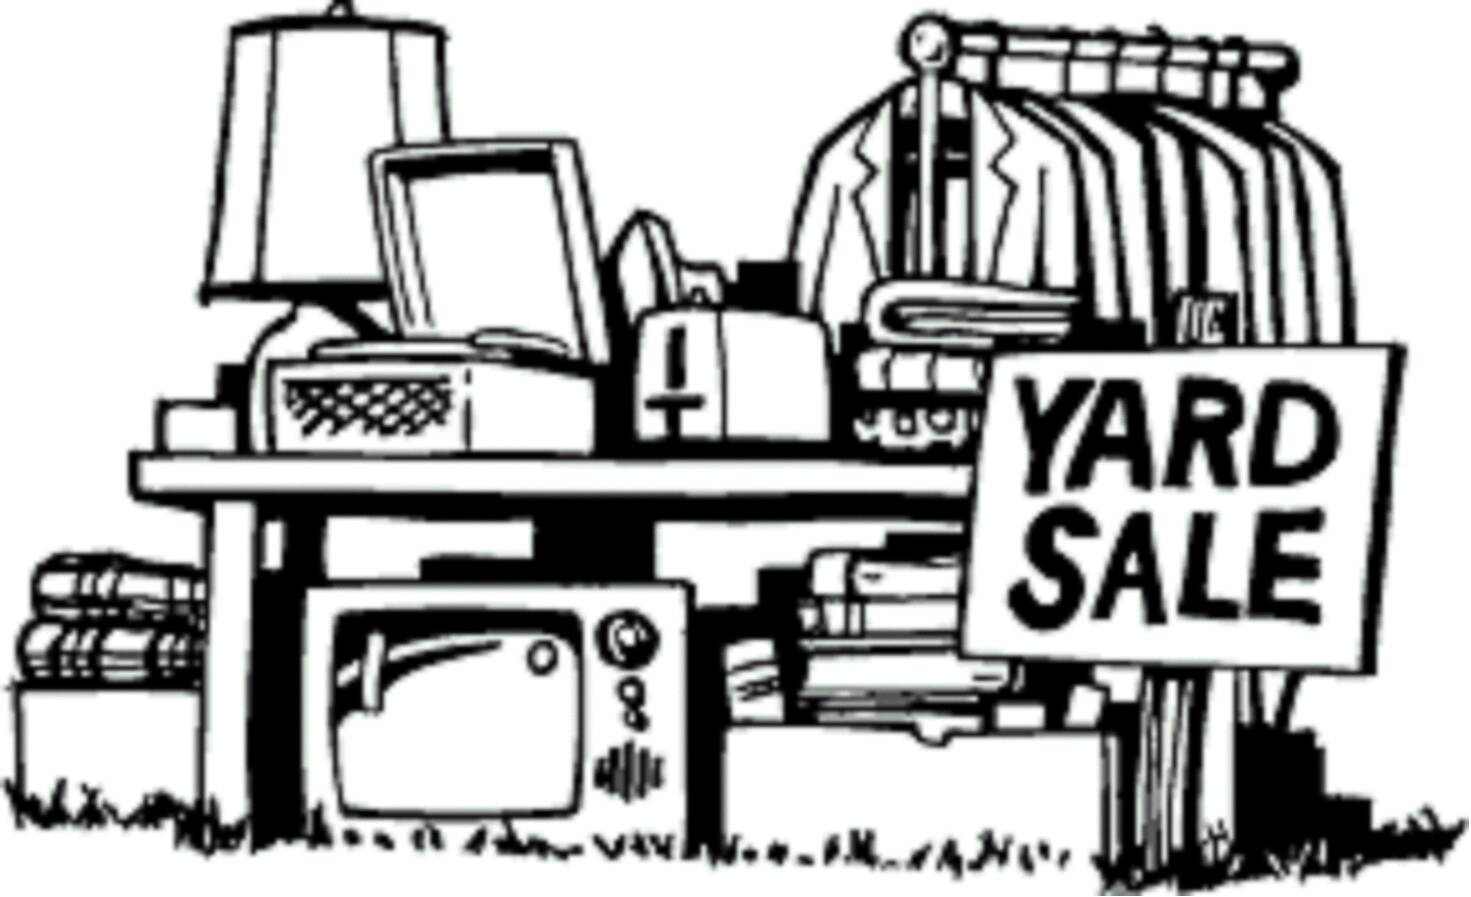 1000  images about yard sale on Pinterest | Be simple, Funny and Chalkboard easel